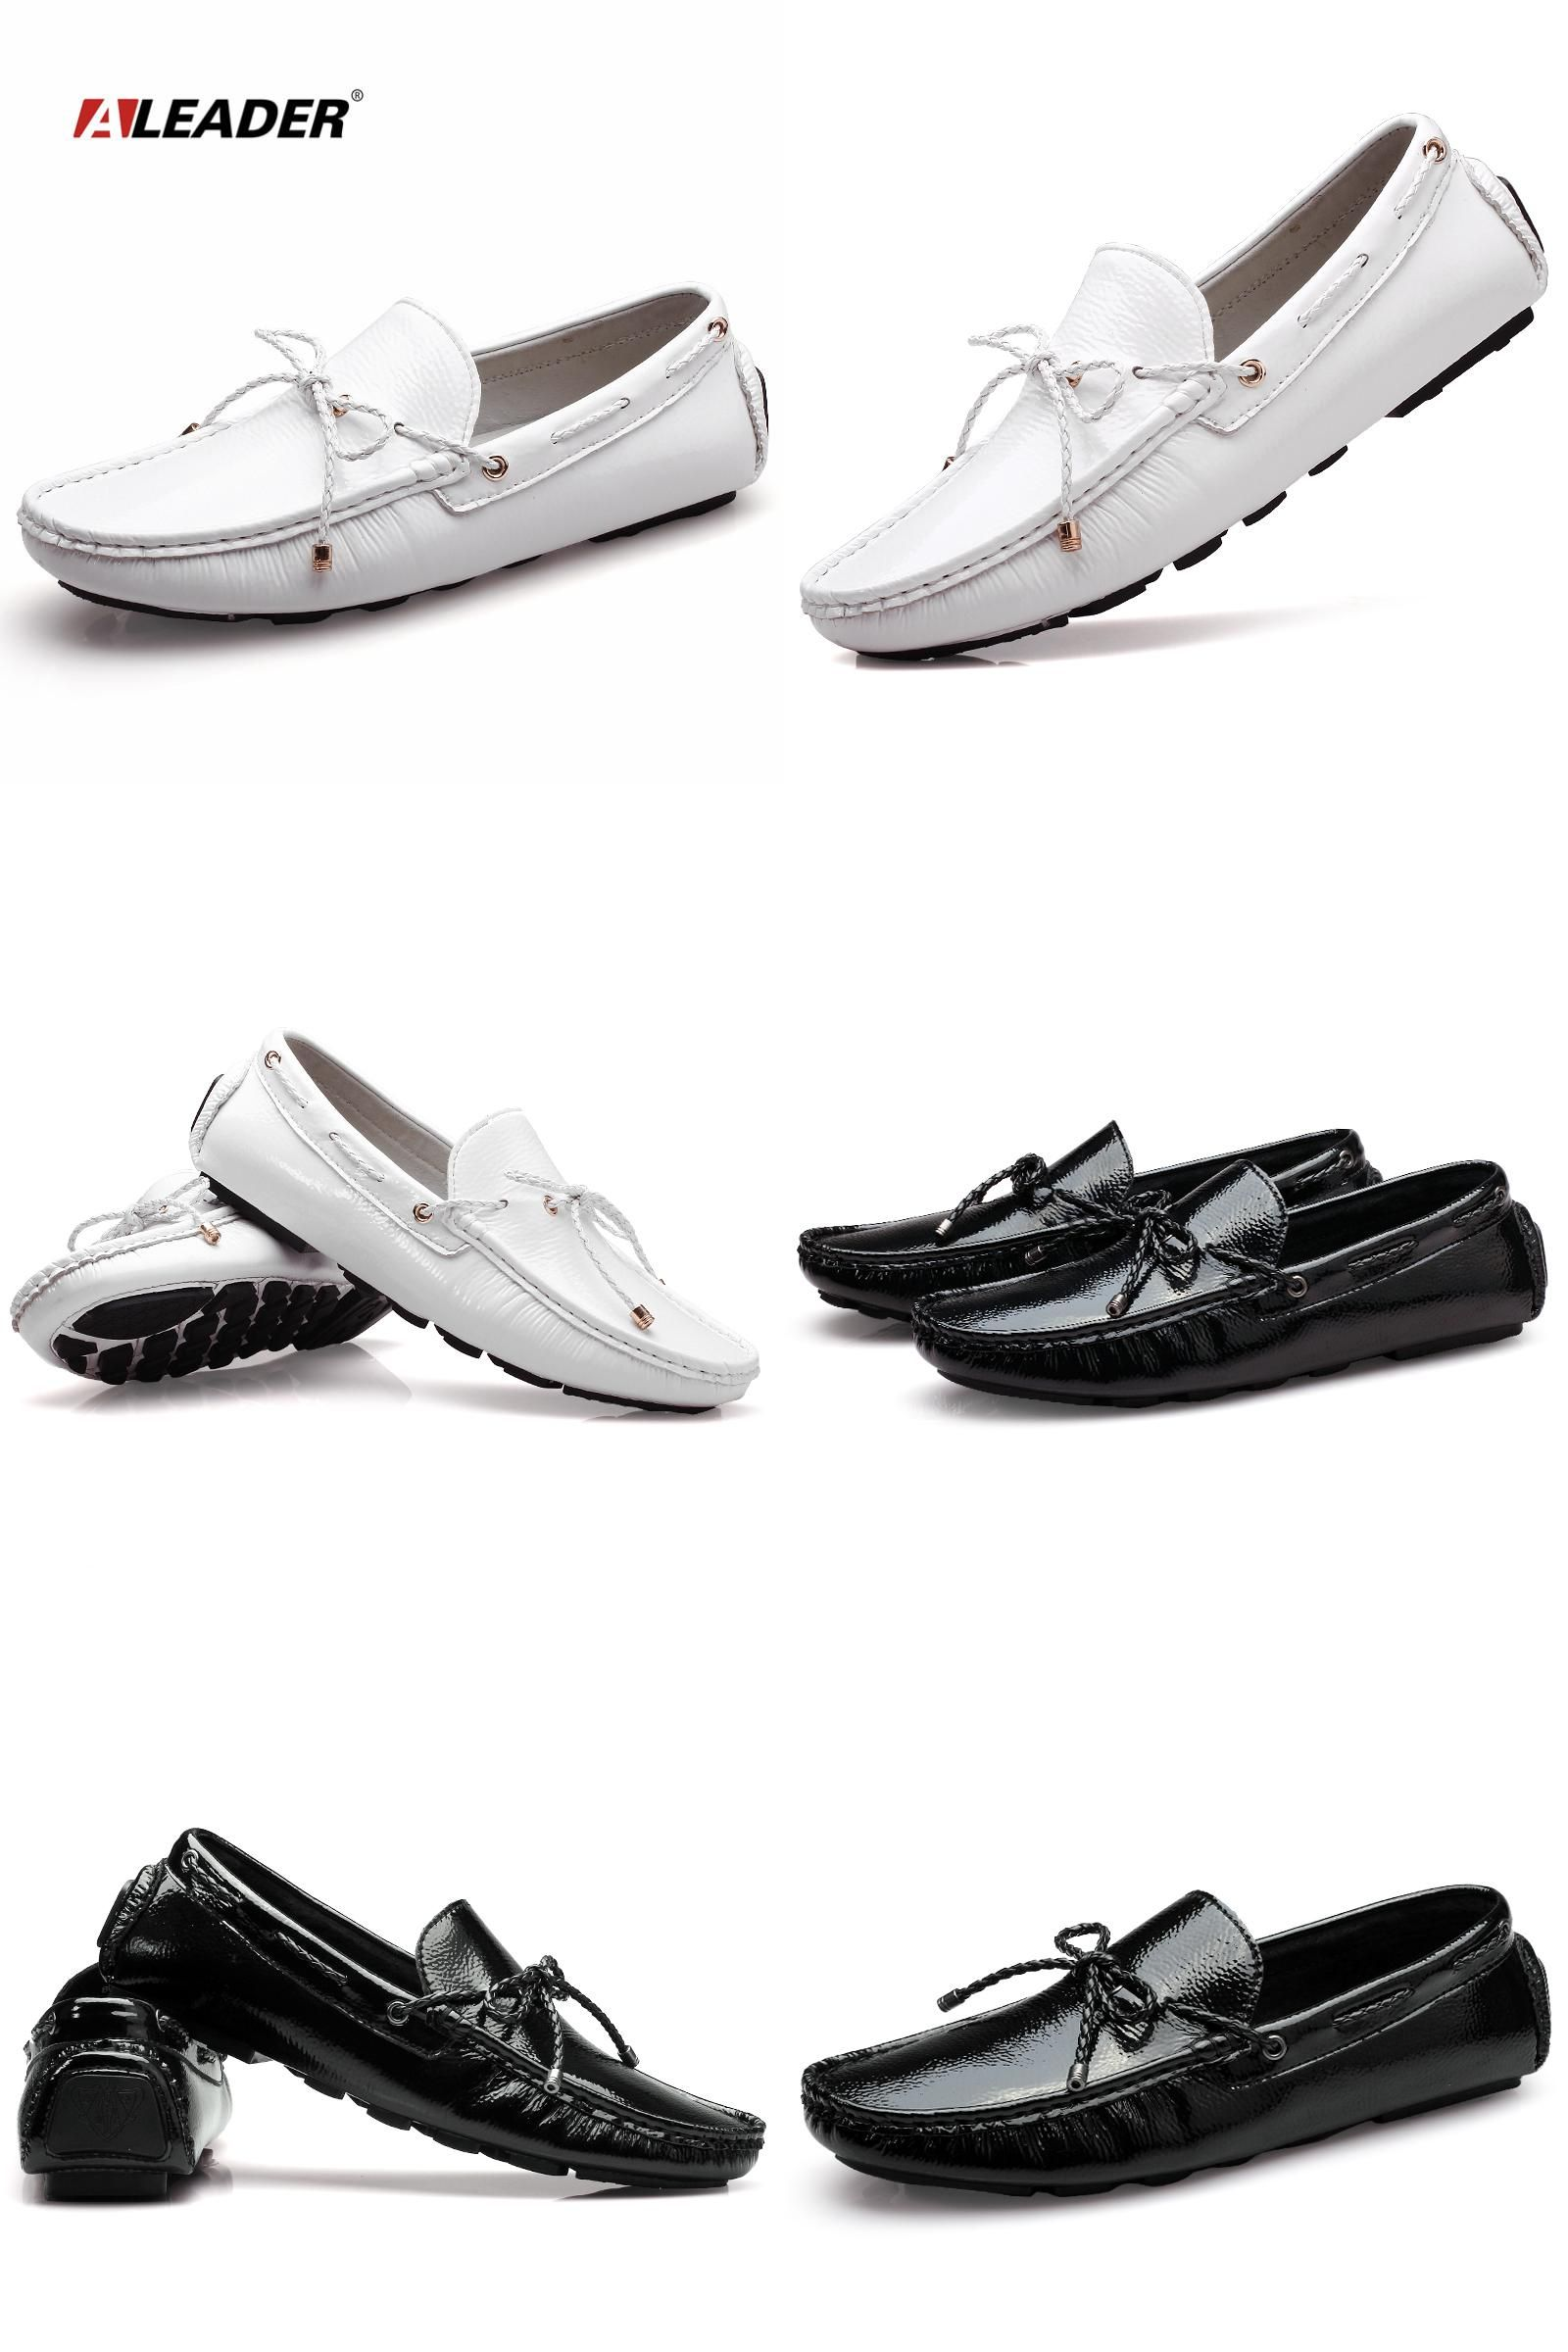 cbab7819bc6  Visit to Buy  Mens Casual Loafers Shoes New 2017 Autumn Men s Patent  Leather Driving